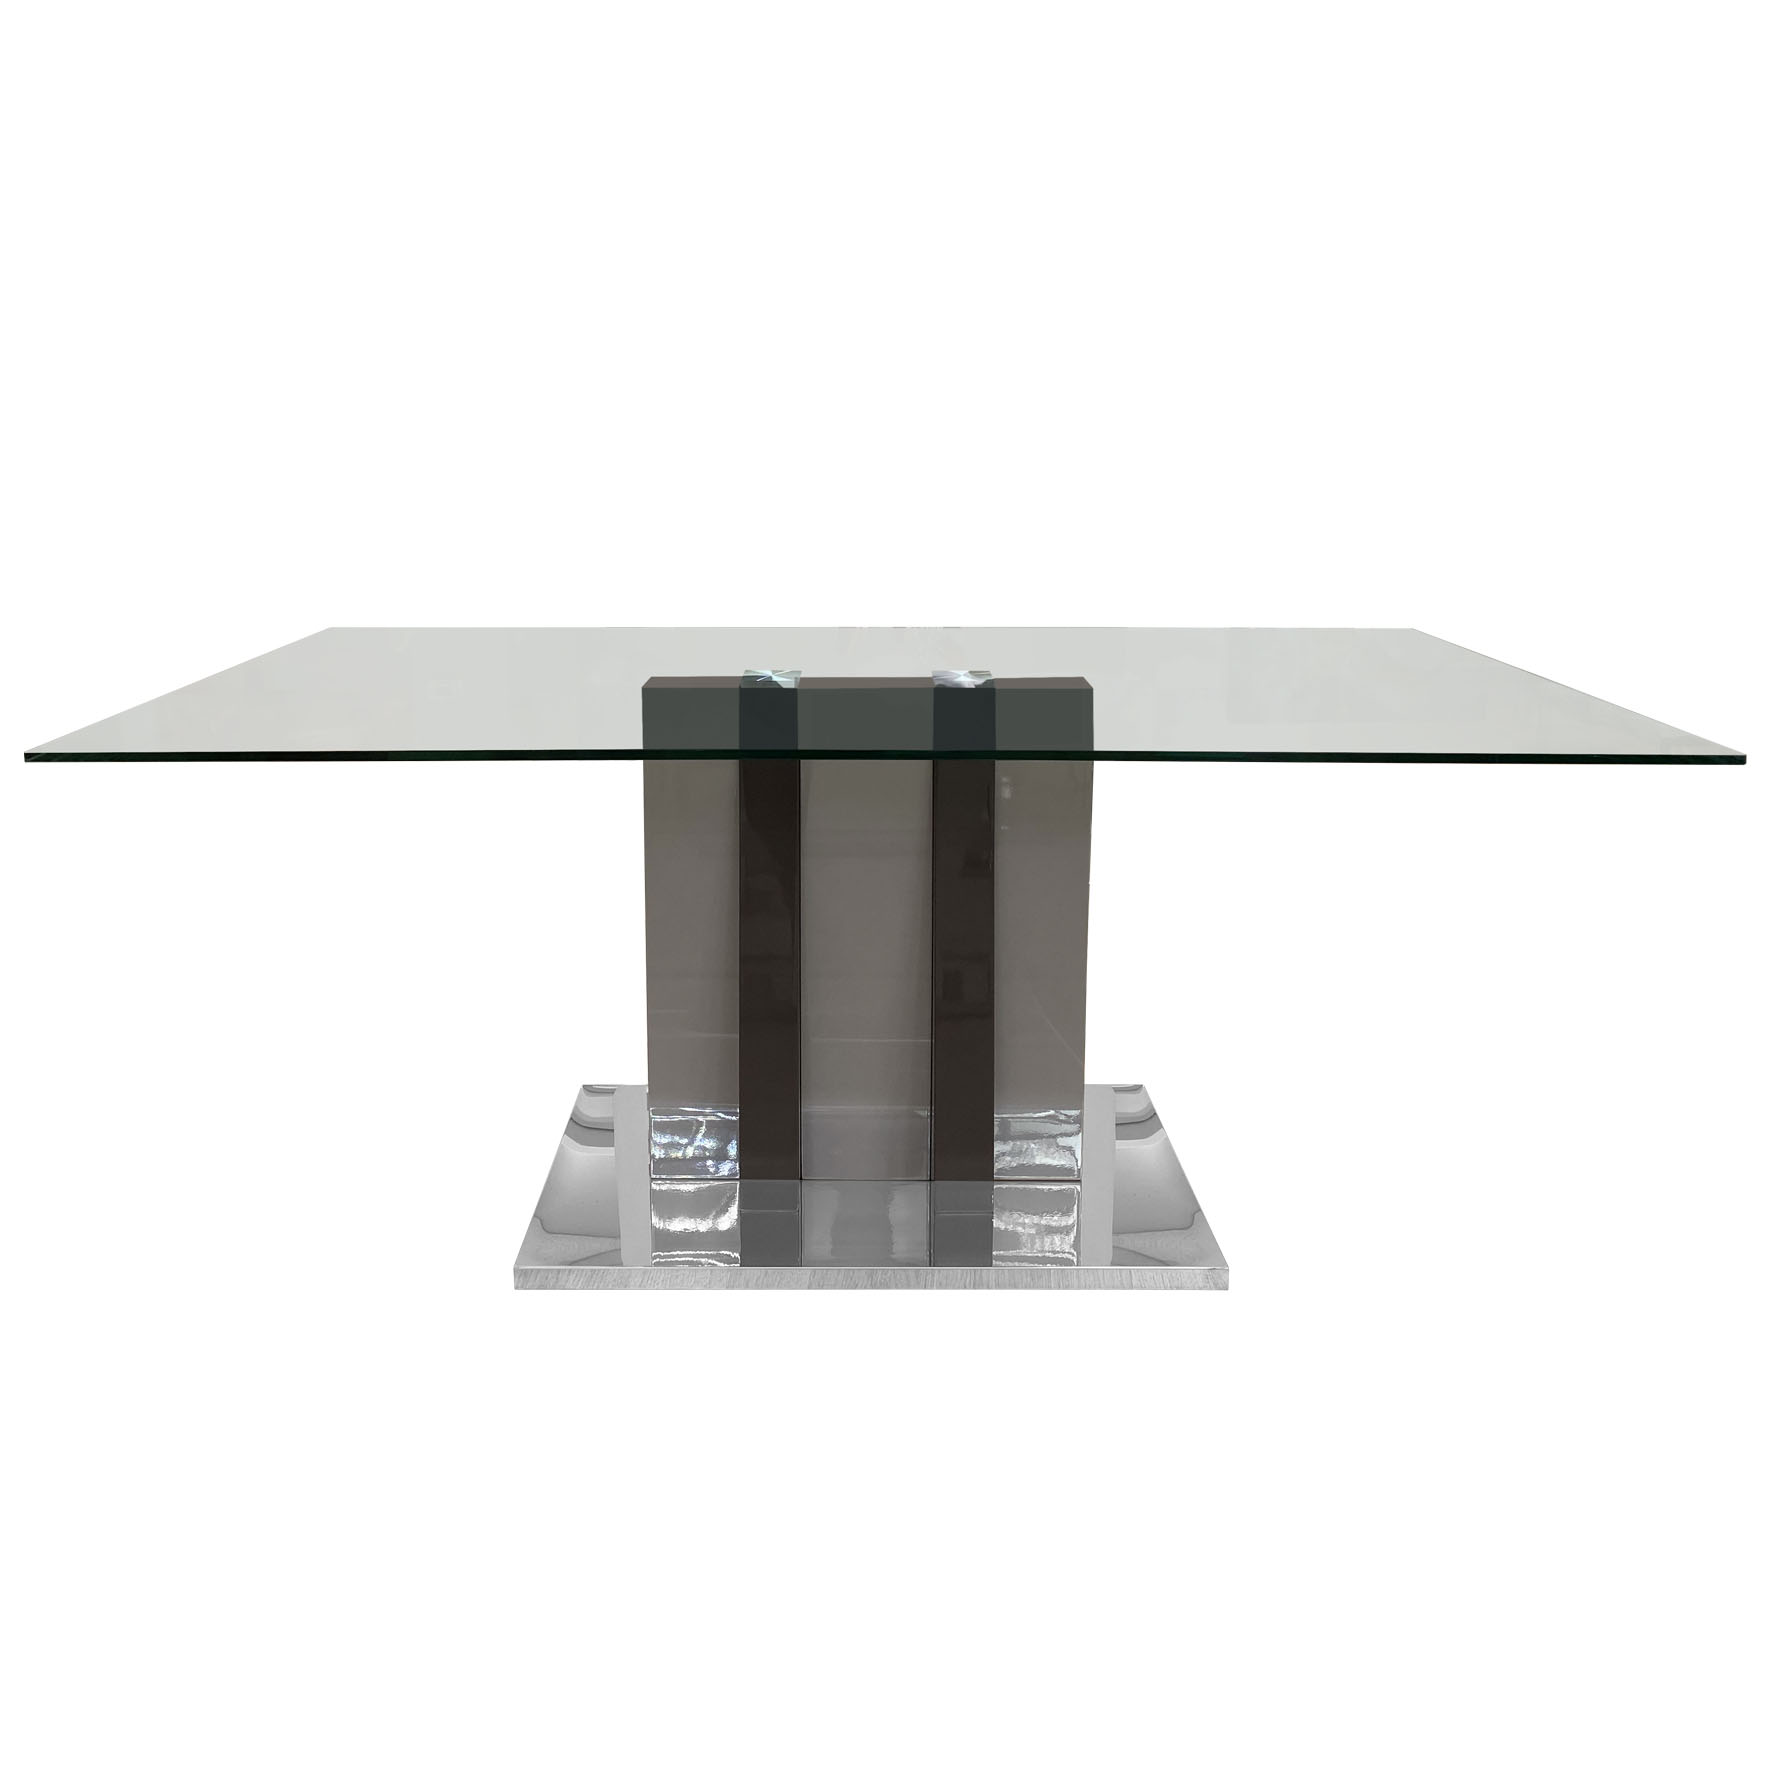 champagne dark brown dining table mdf high gloss stainless steel base tempered glass top modern living room